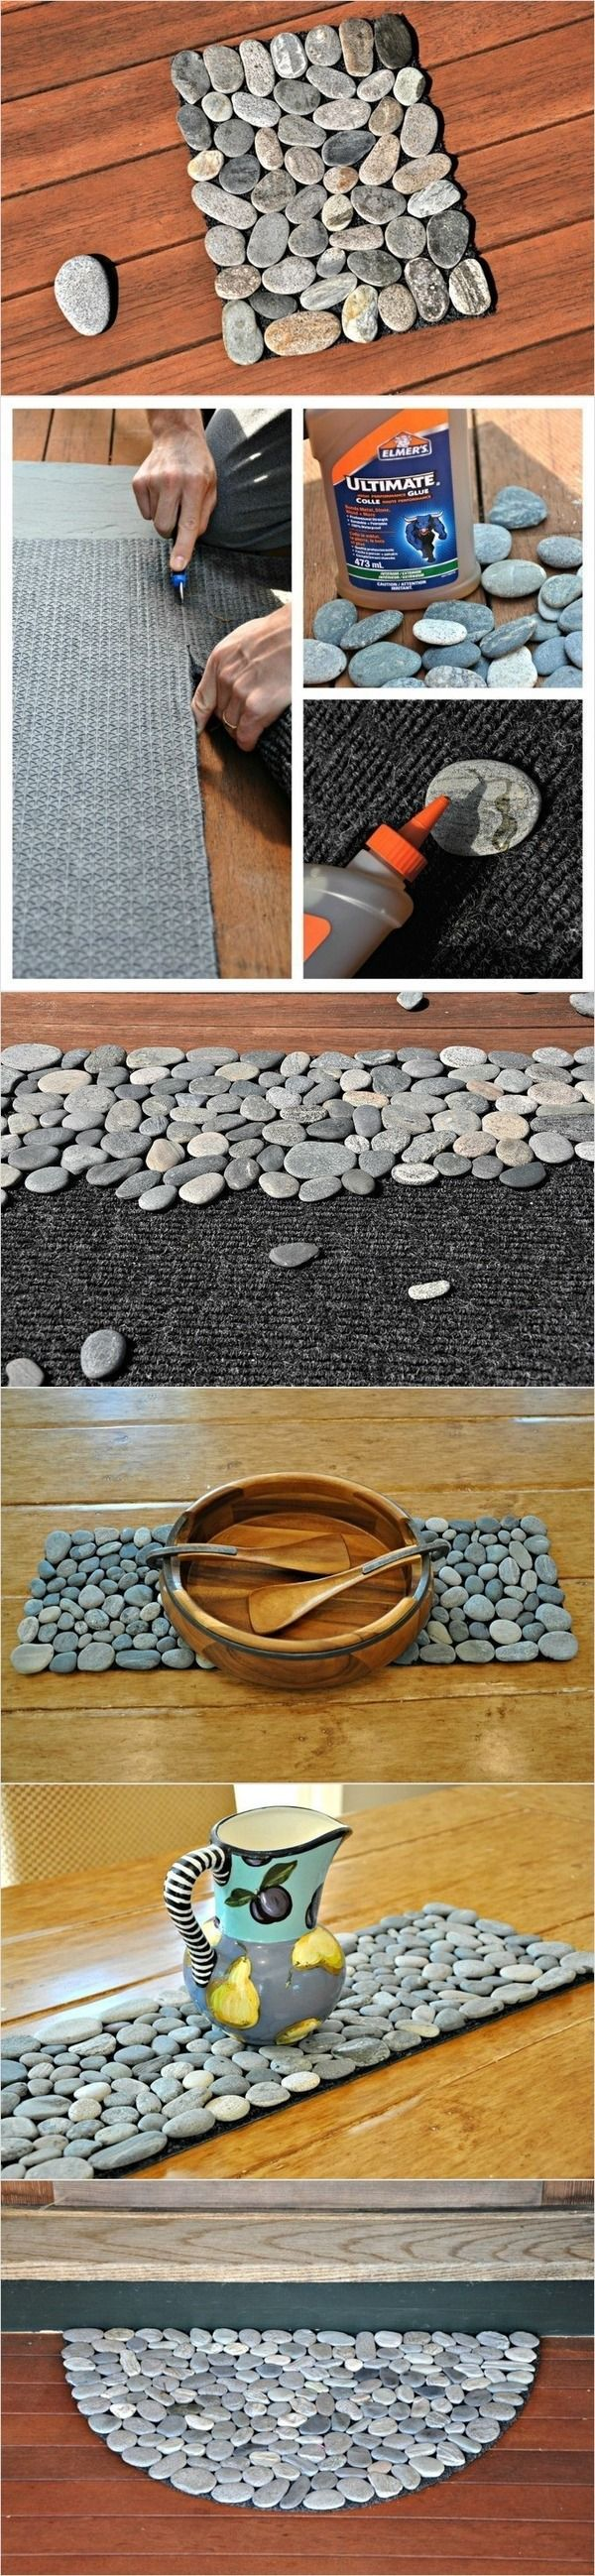 Pebble Mats Can Be Made Into Table Runners, Place Mats,